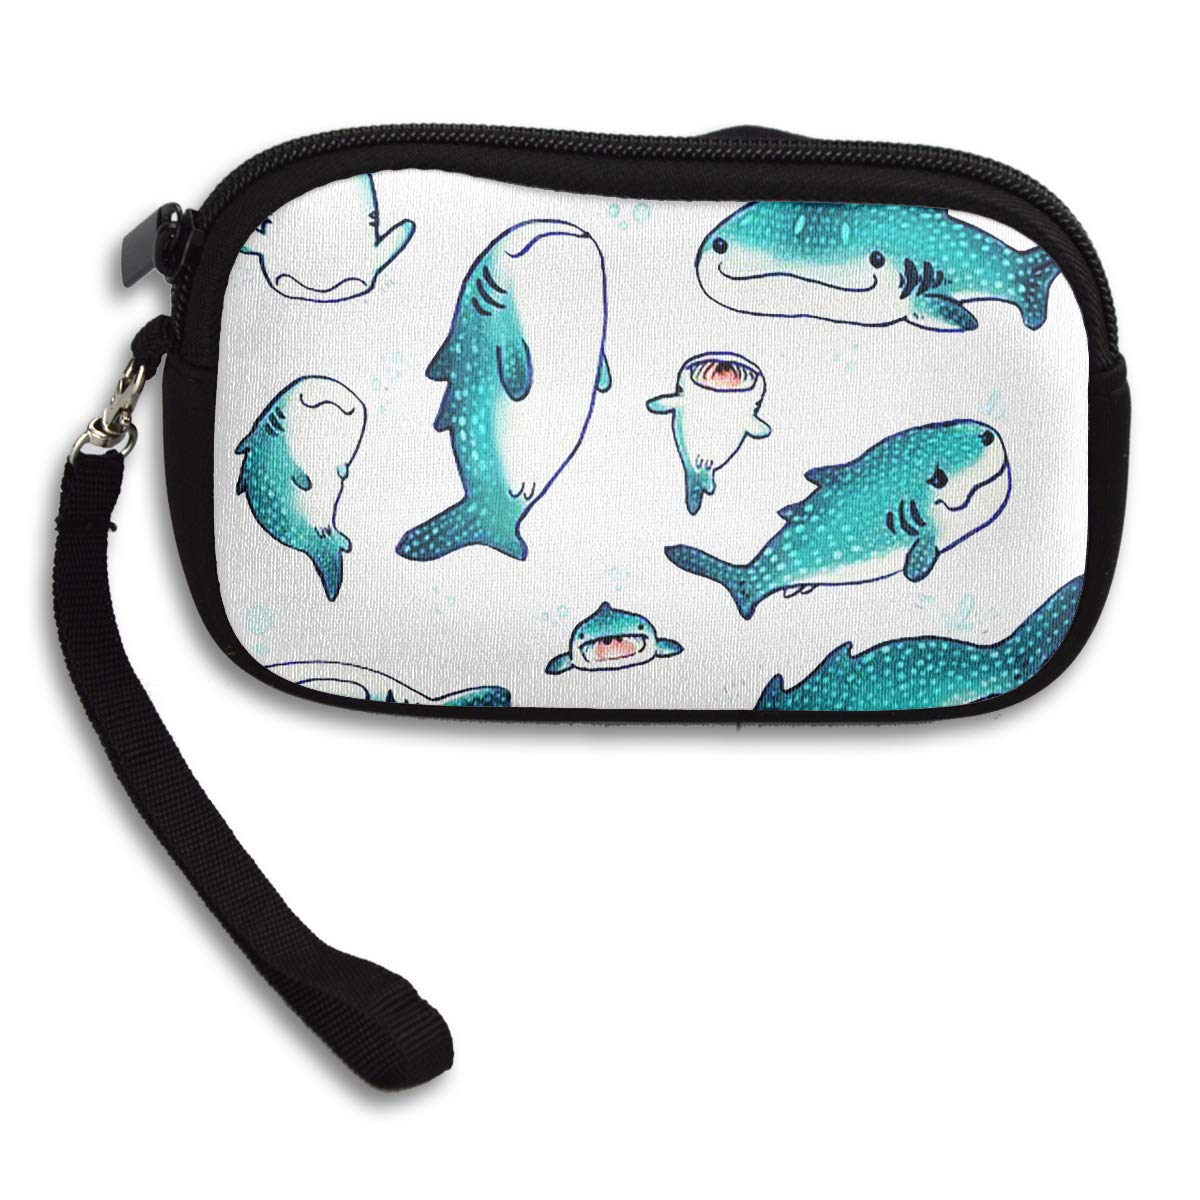 Womens Wristlet Clutch Wallet for Wedding And Party Portable Clutch Wallets